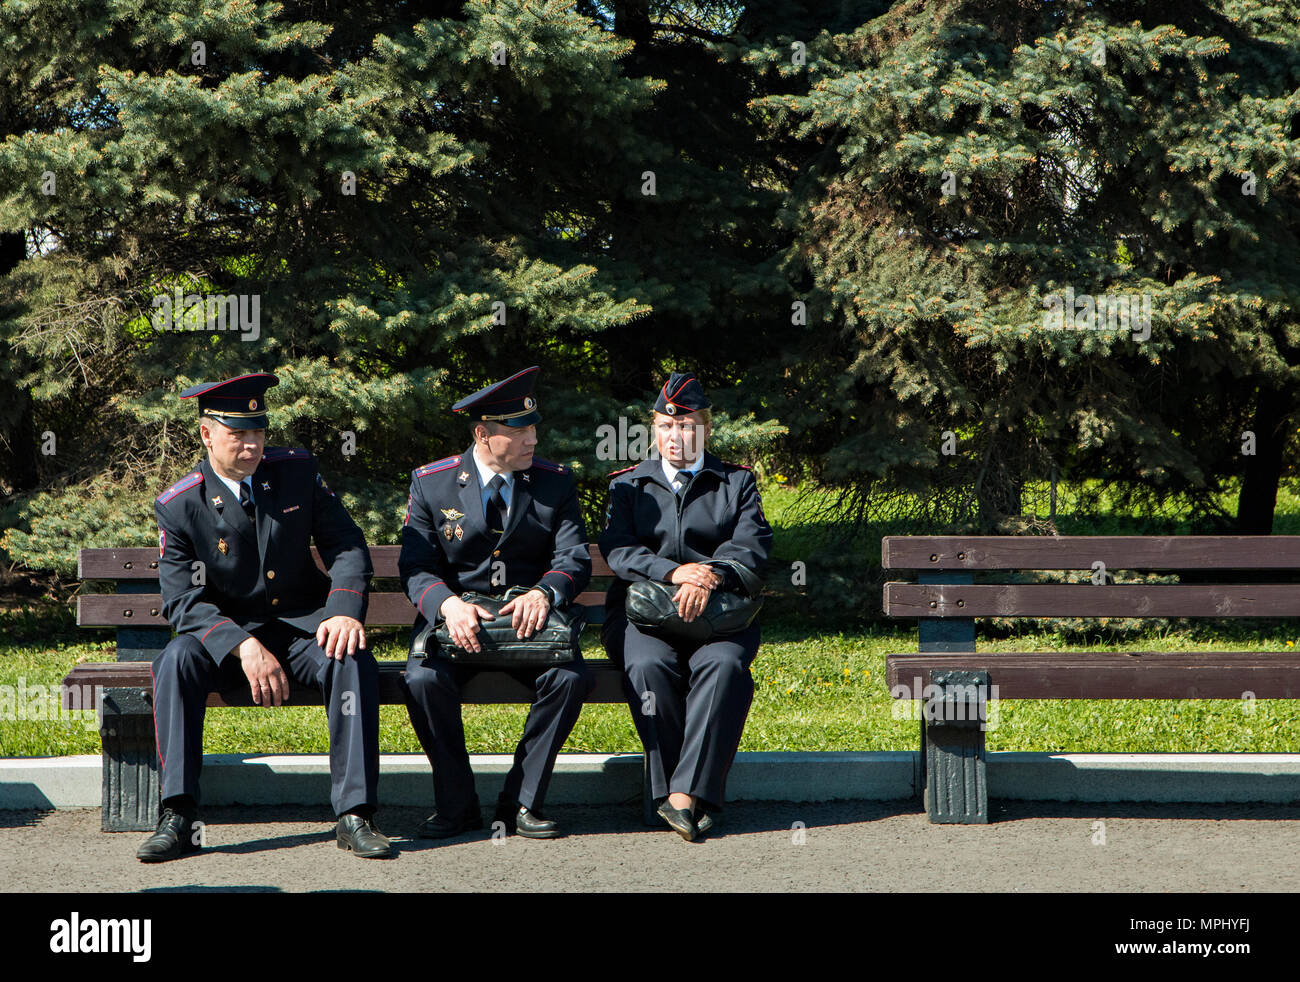 Moscow Russia, May 9, 2018: police officers sitting on a bench in sunny day - Stock Image